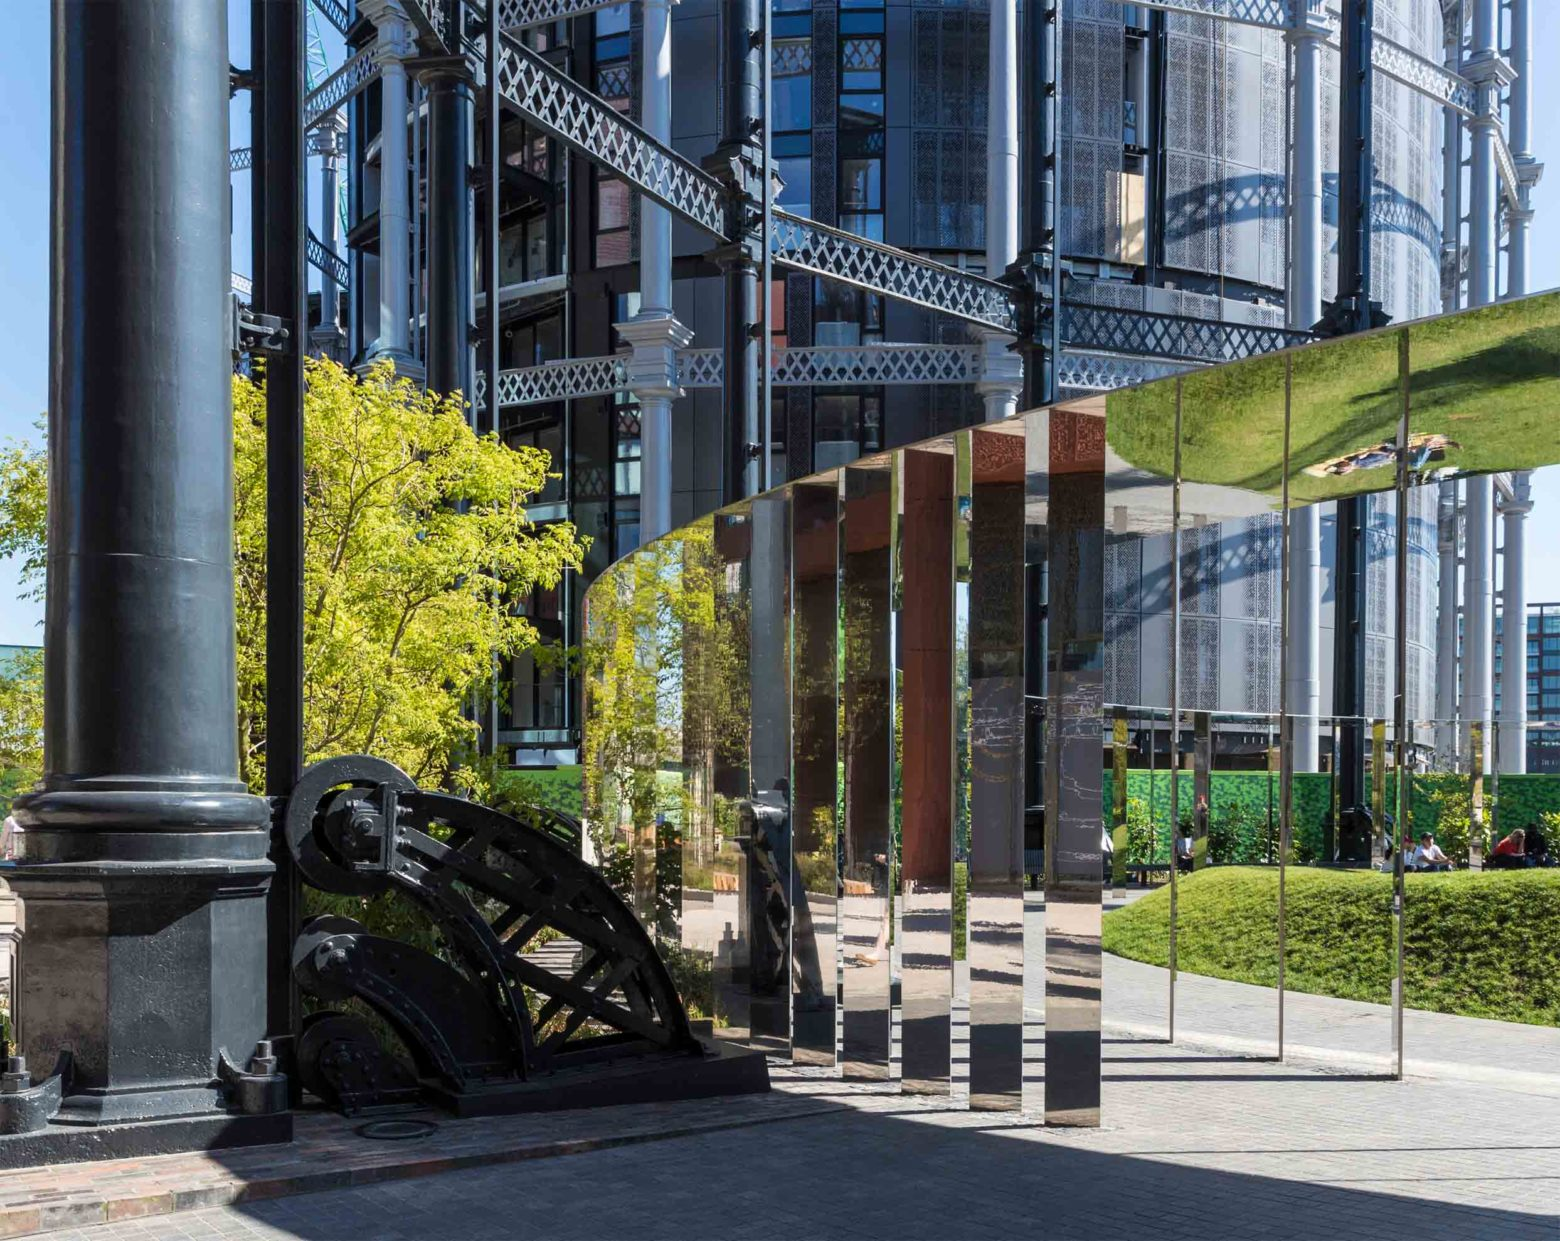 Gasholder Park selected as one of seven 'architectural wonders'